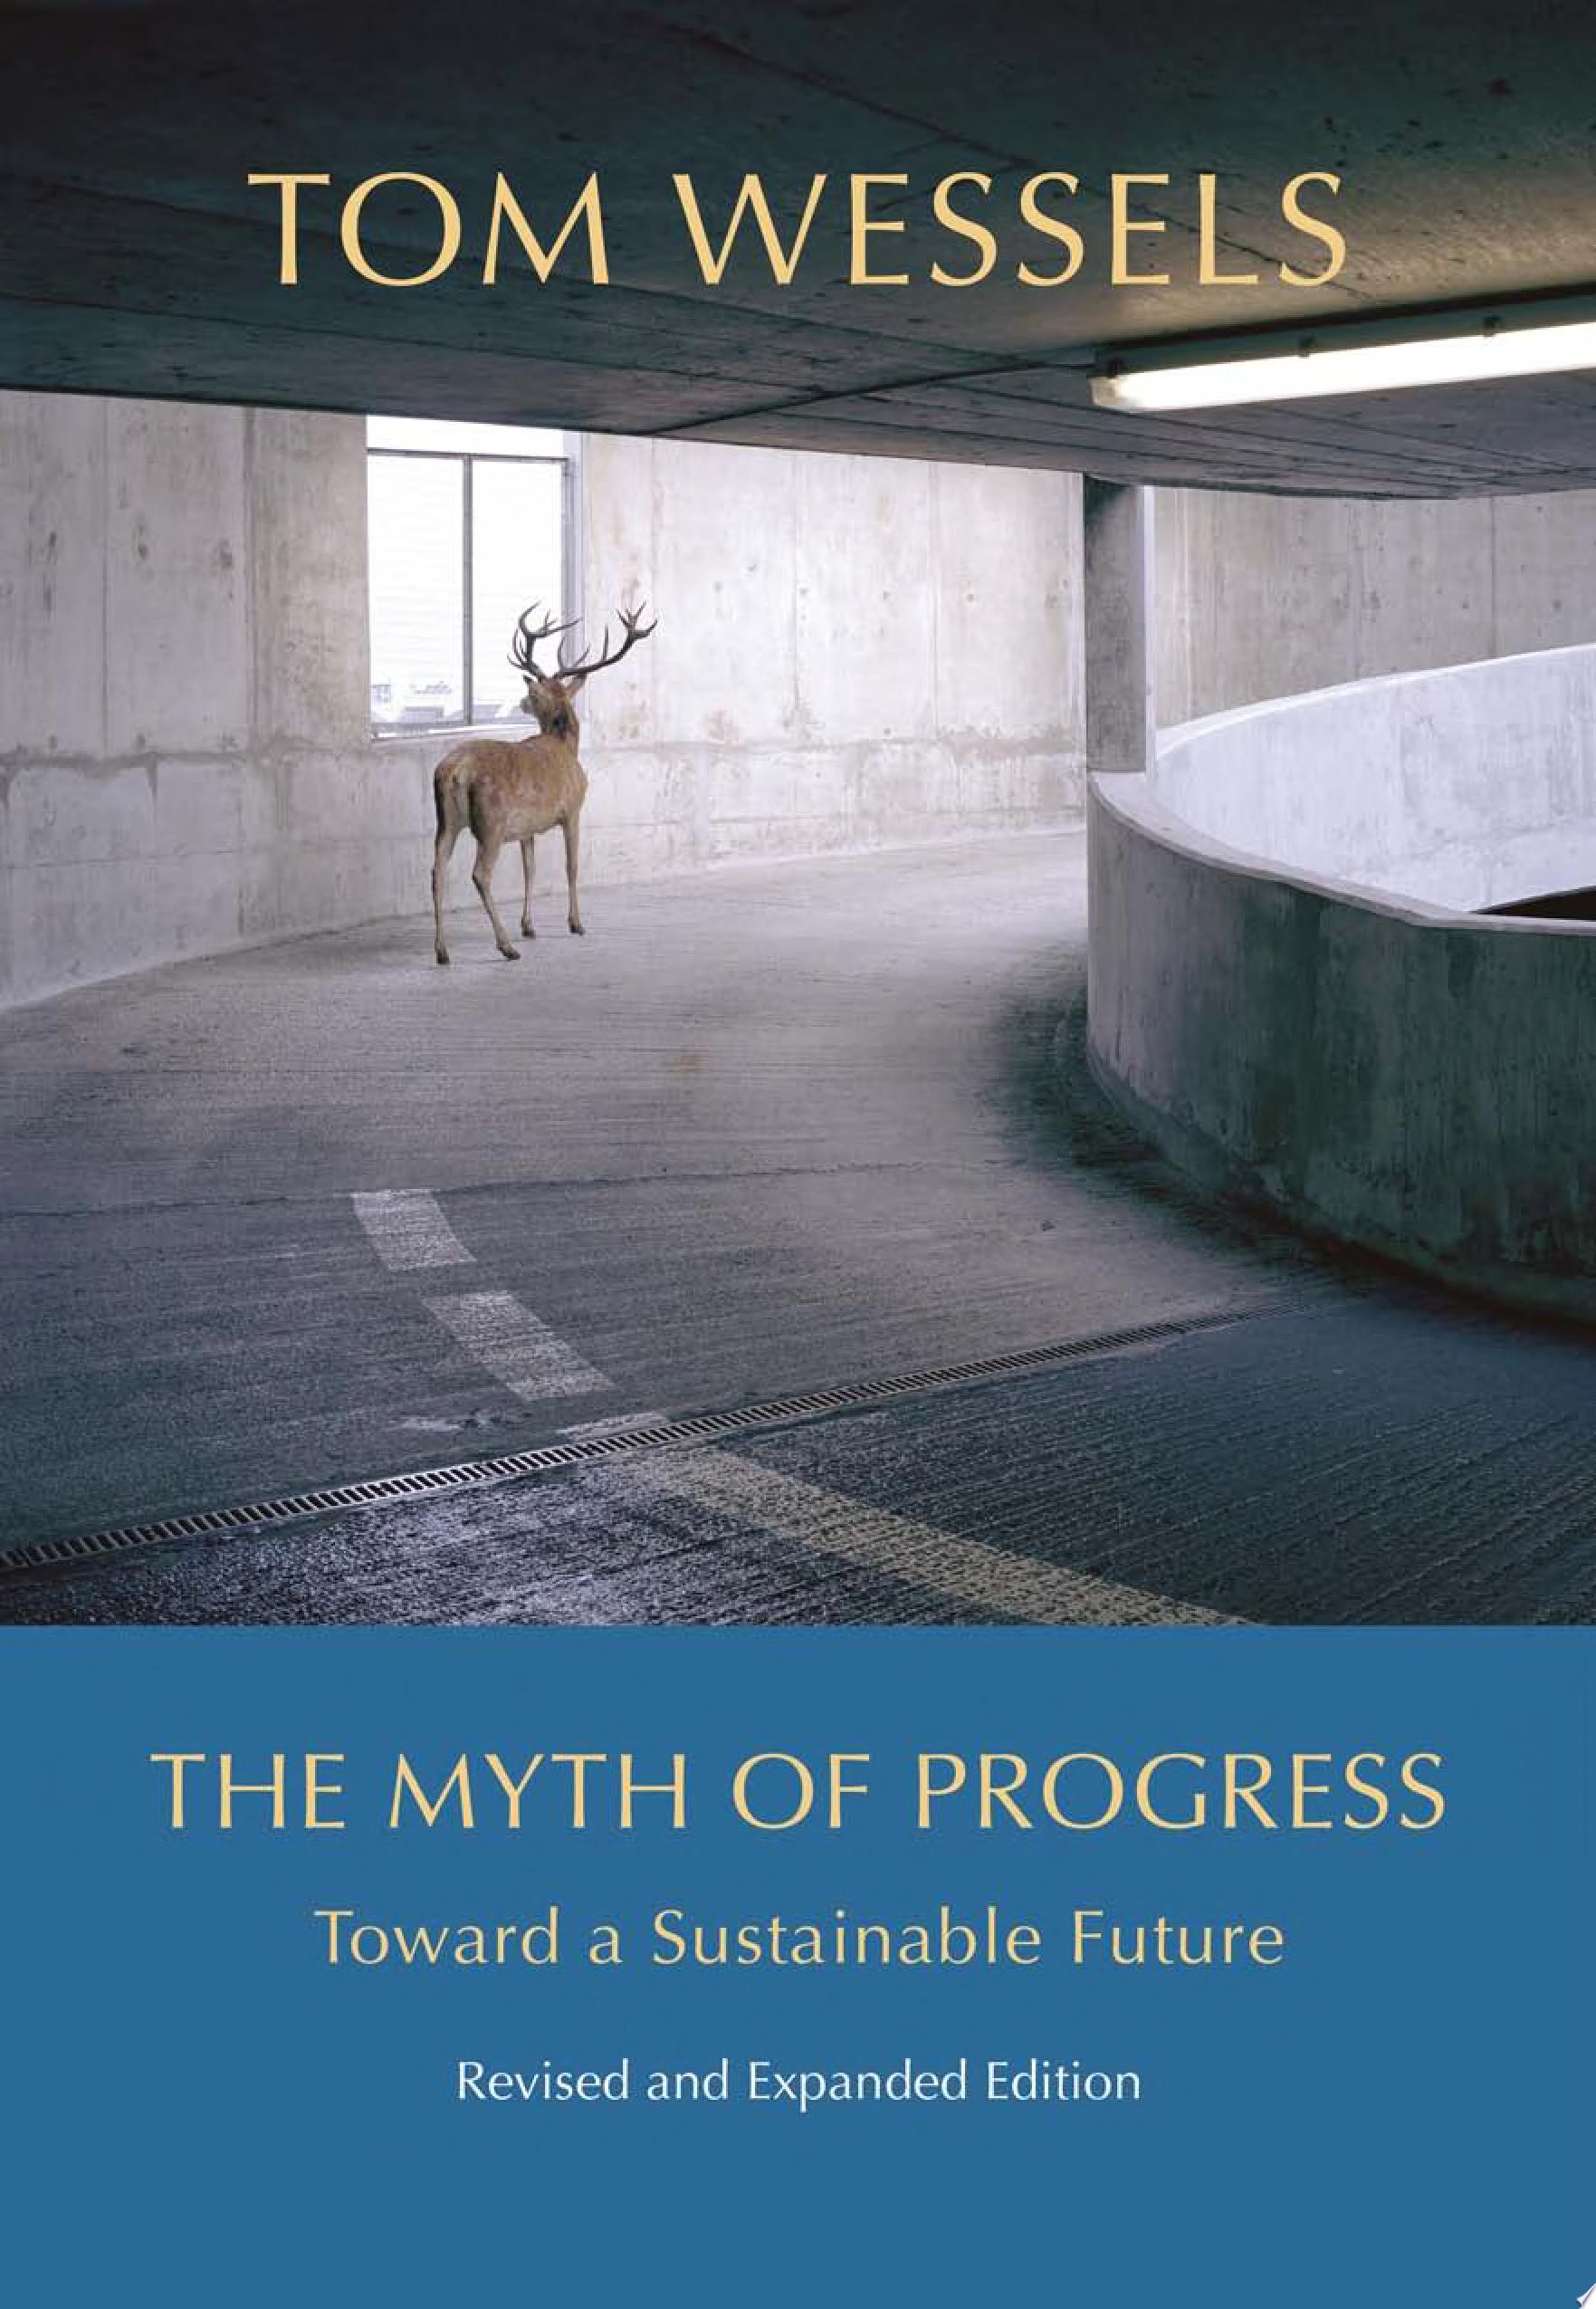 The Myth of Progress